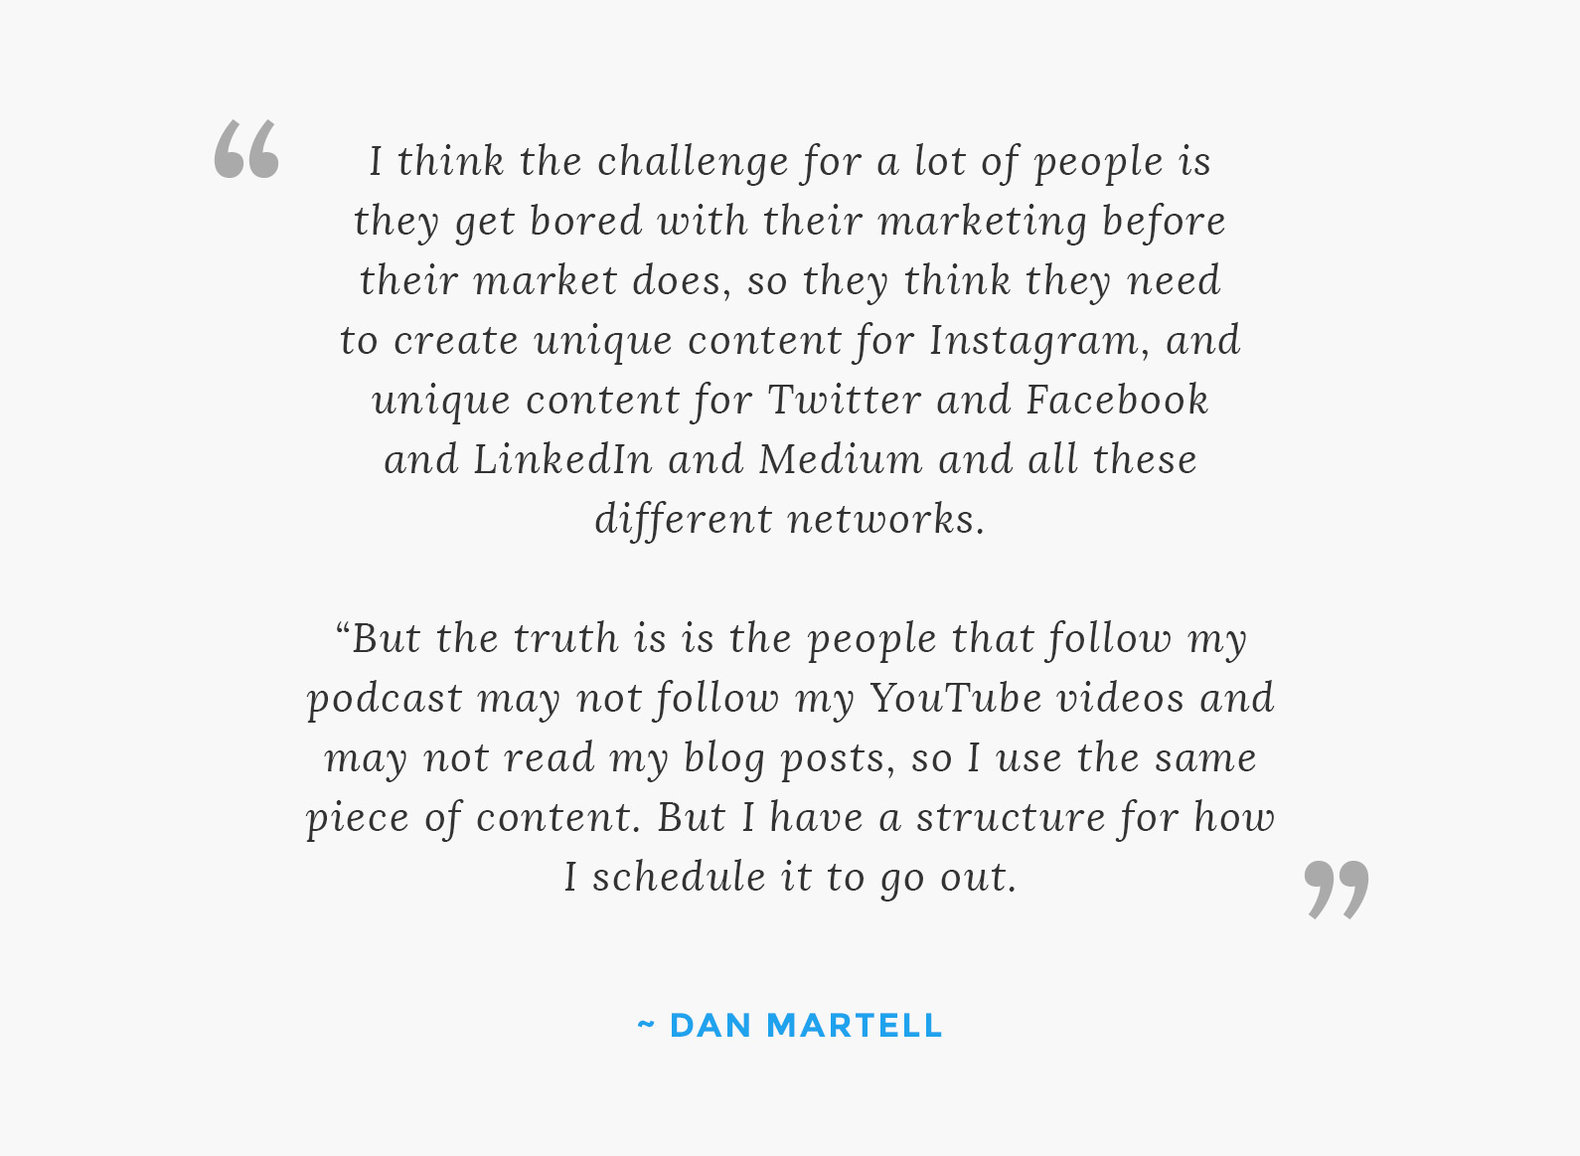 """I think the challenge for a lot of people is they get bored with their marketing before their market does, so they think they need to create unique content for Instagram, and unique content for Twitter and Facebook and LinkedIn and Medium and all these different networks.   ""But the truth is is the people that follow my podcast may not follow my YouTube videos and may not read my blog posts, so I use the same piece of content, but I have a structure for how I schedule it to go out."""